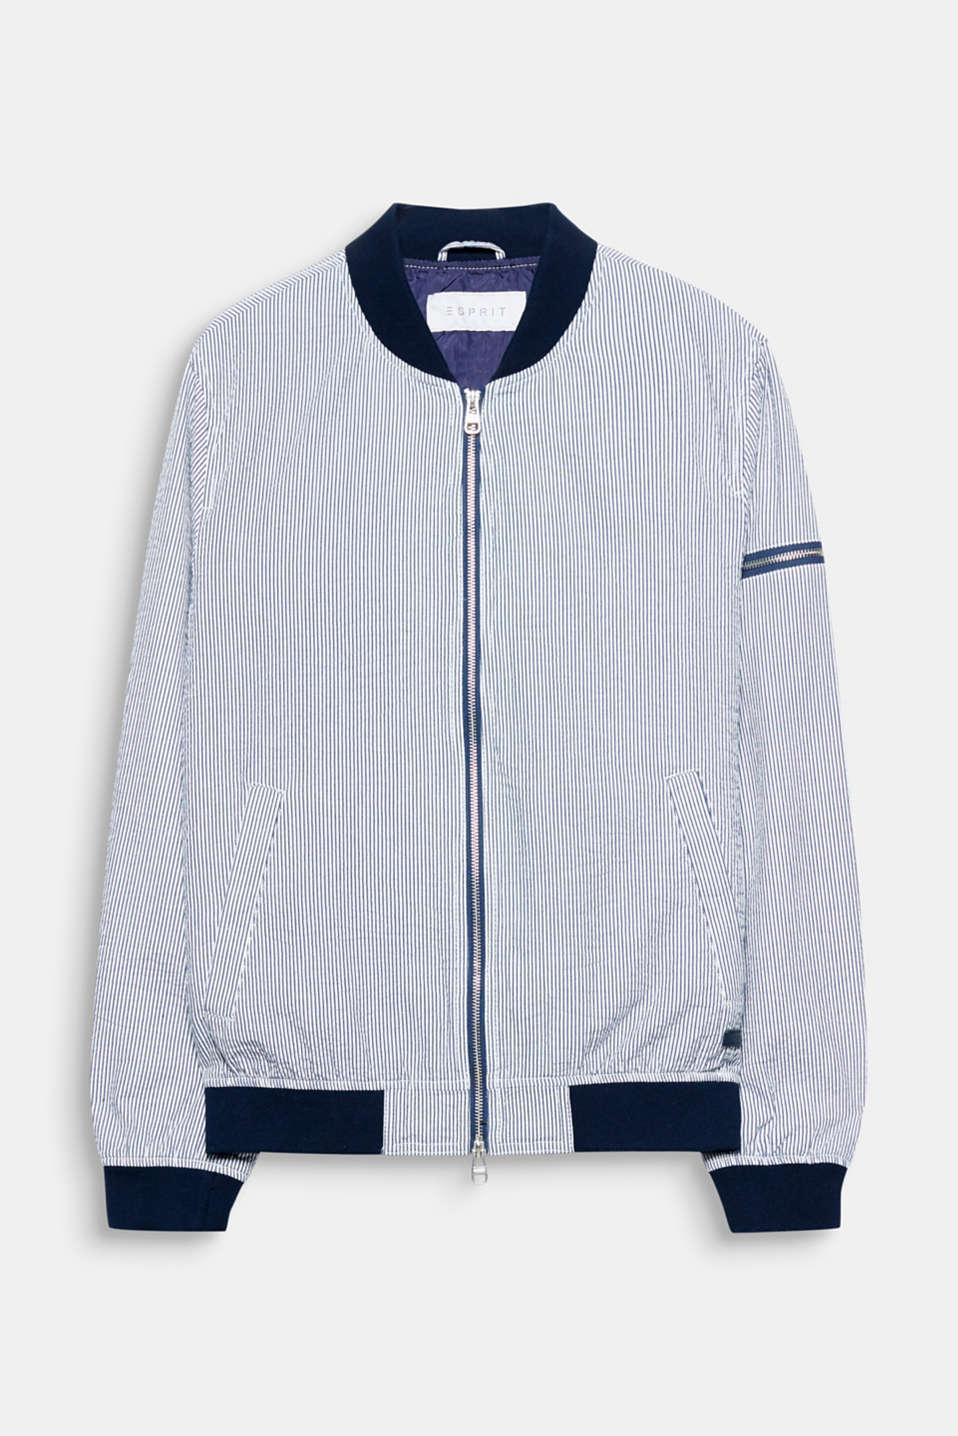 The airy seersucker fabric composed of blended cotton makes this bomber jacket perfectly suited for warm temperatures.